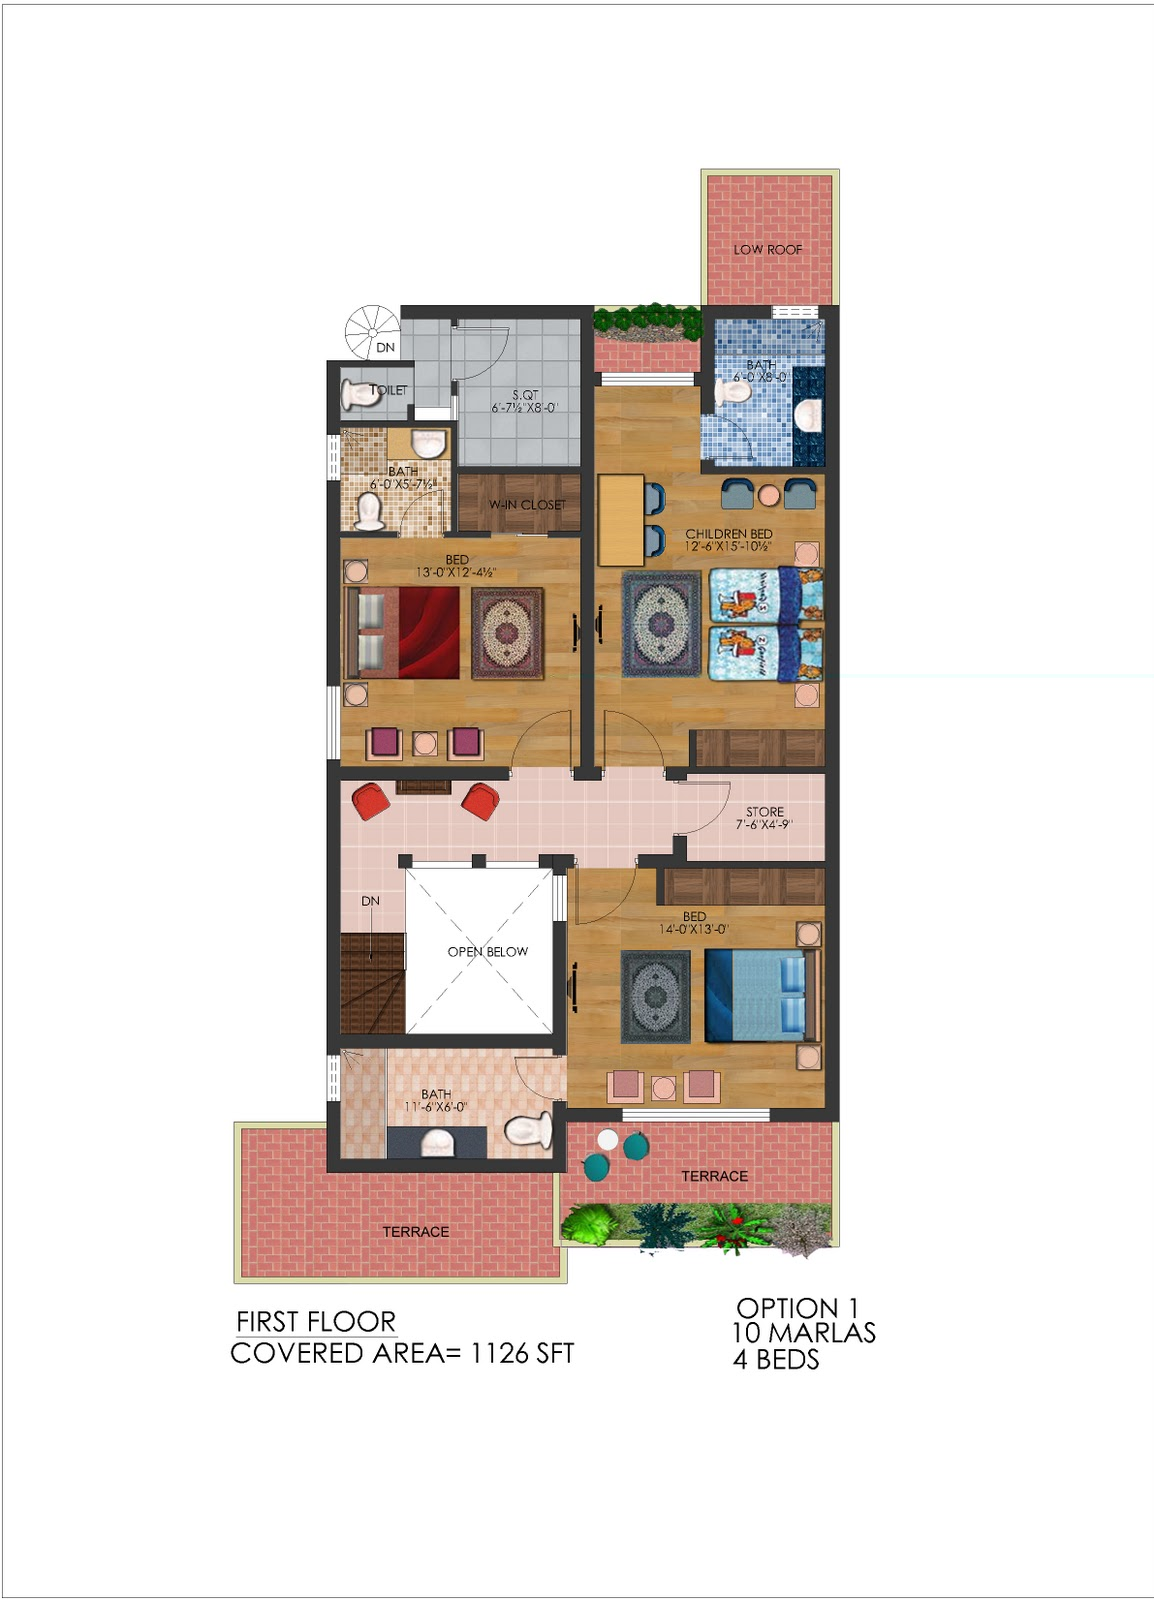 10 Marla House Plan http://frontelevation.blogspot.com/2011/11/10